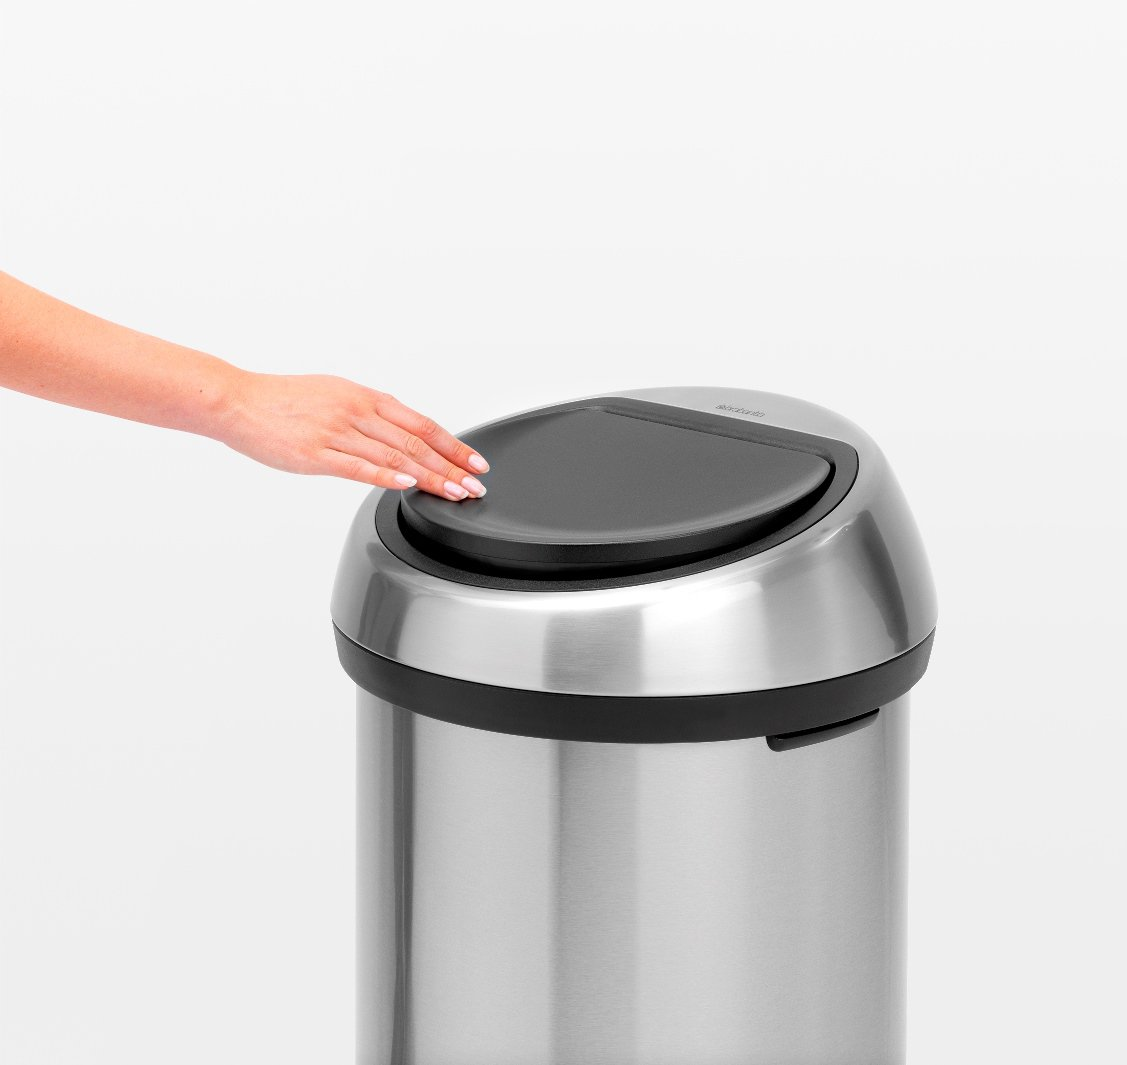 Brabantia 60 Litre Touch Bin In Metallic Grey With Brilliant Steel Lid At Barnitts Online Store